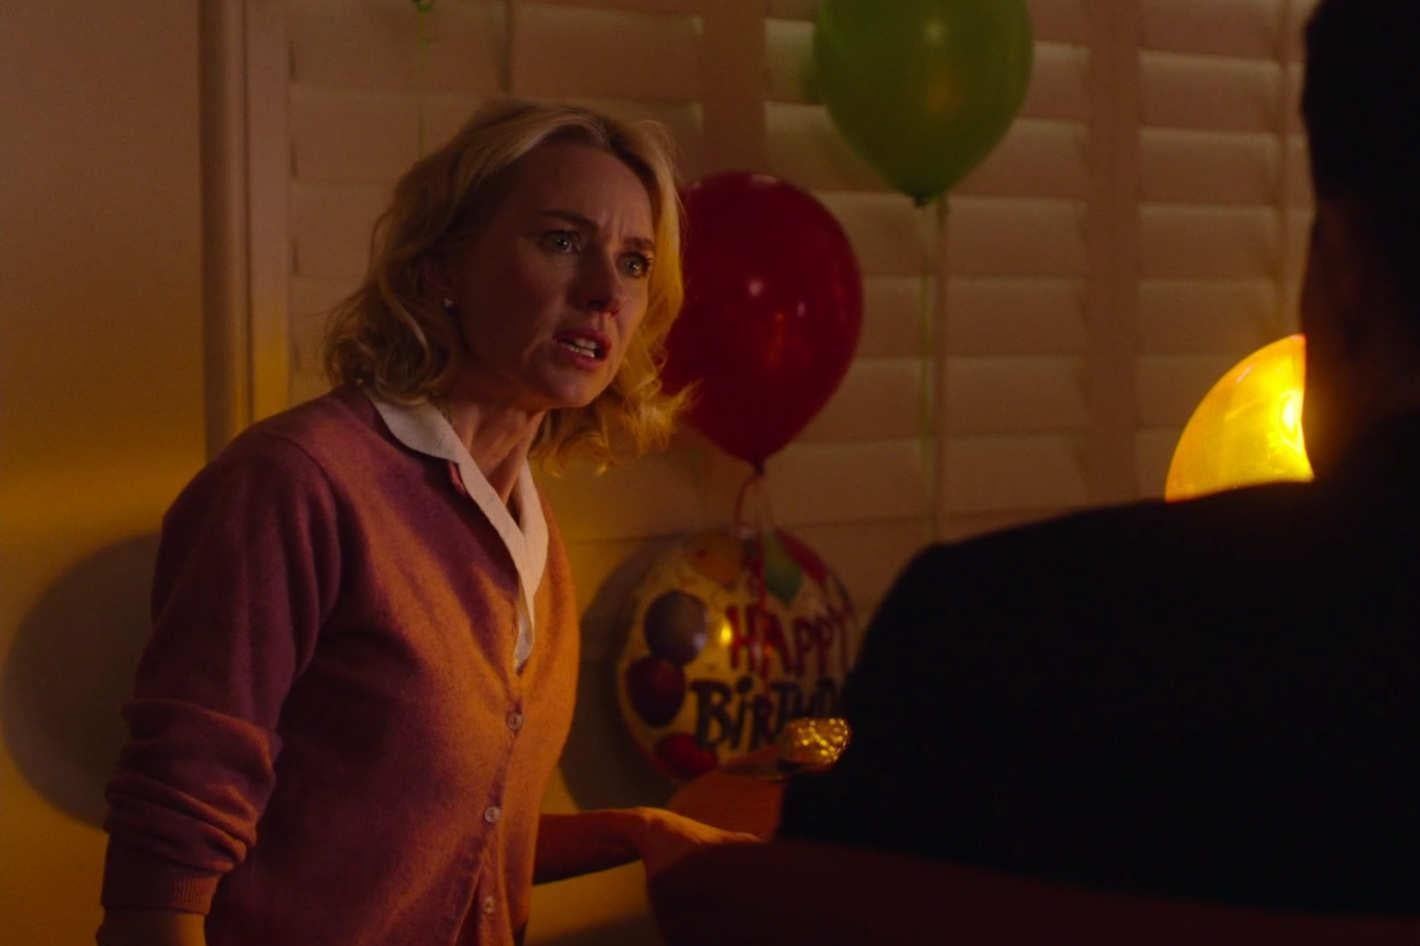 Twin Peaks season 3: Here's who Michael Cera and Naomi Watts are playing